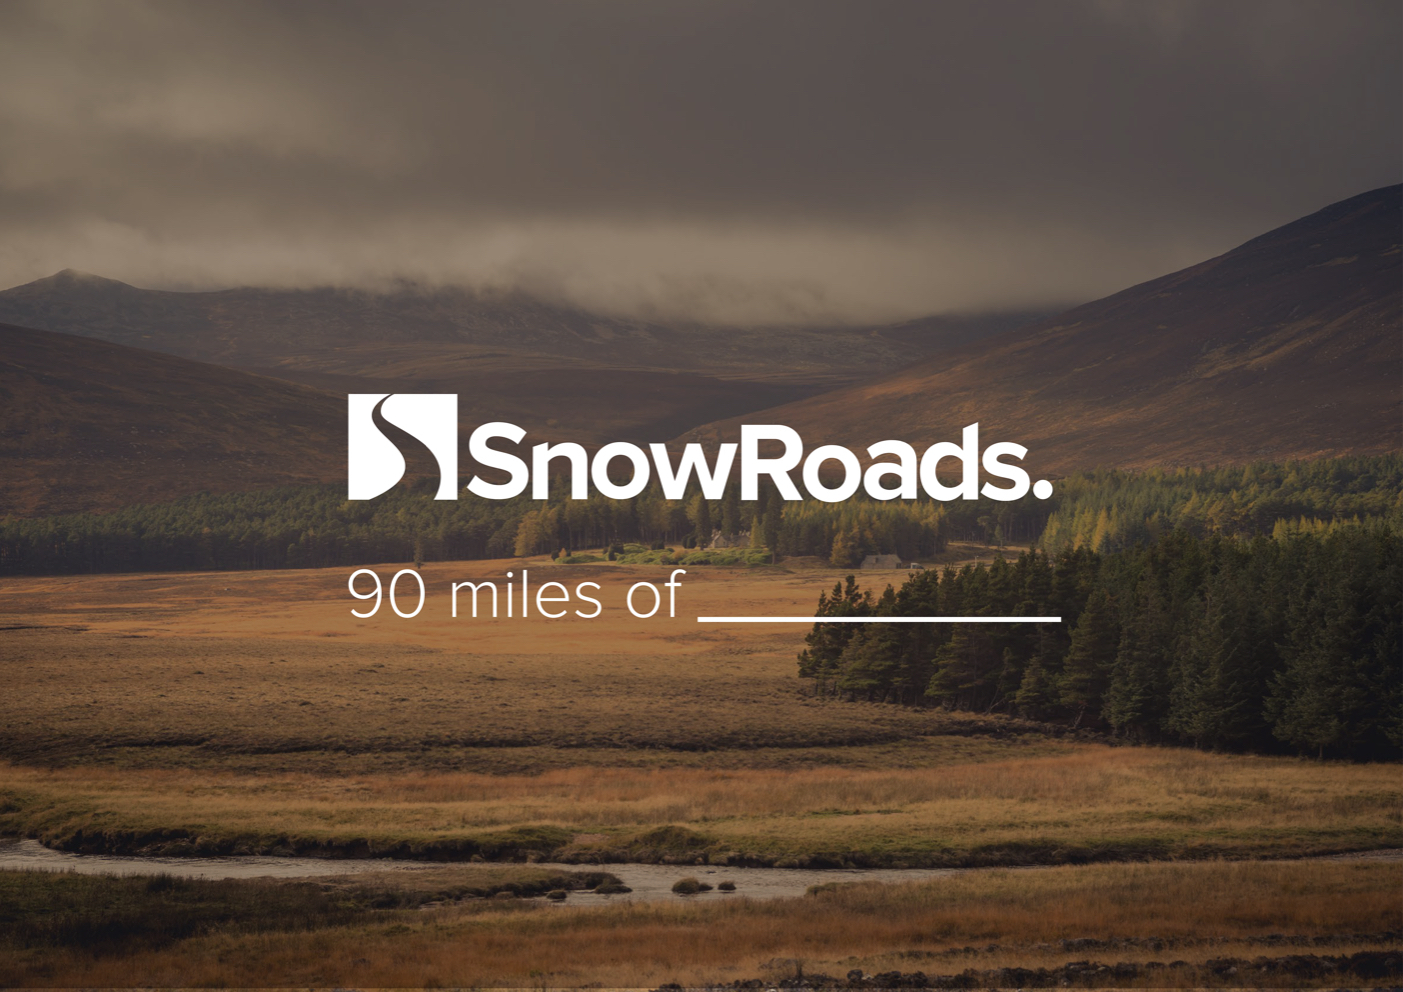 Snowroads Images 002